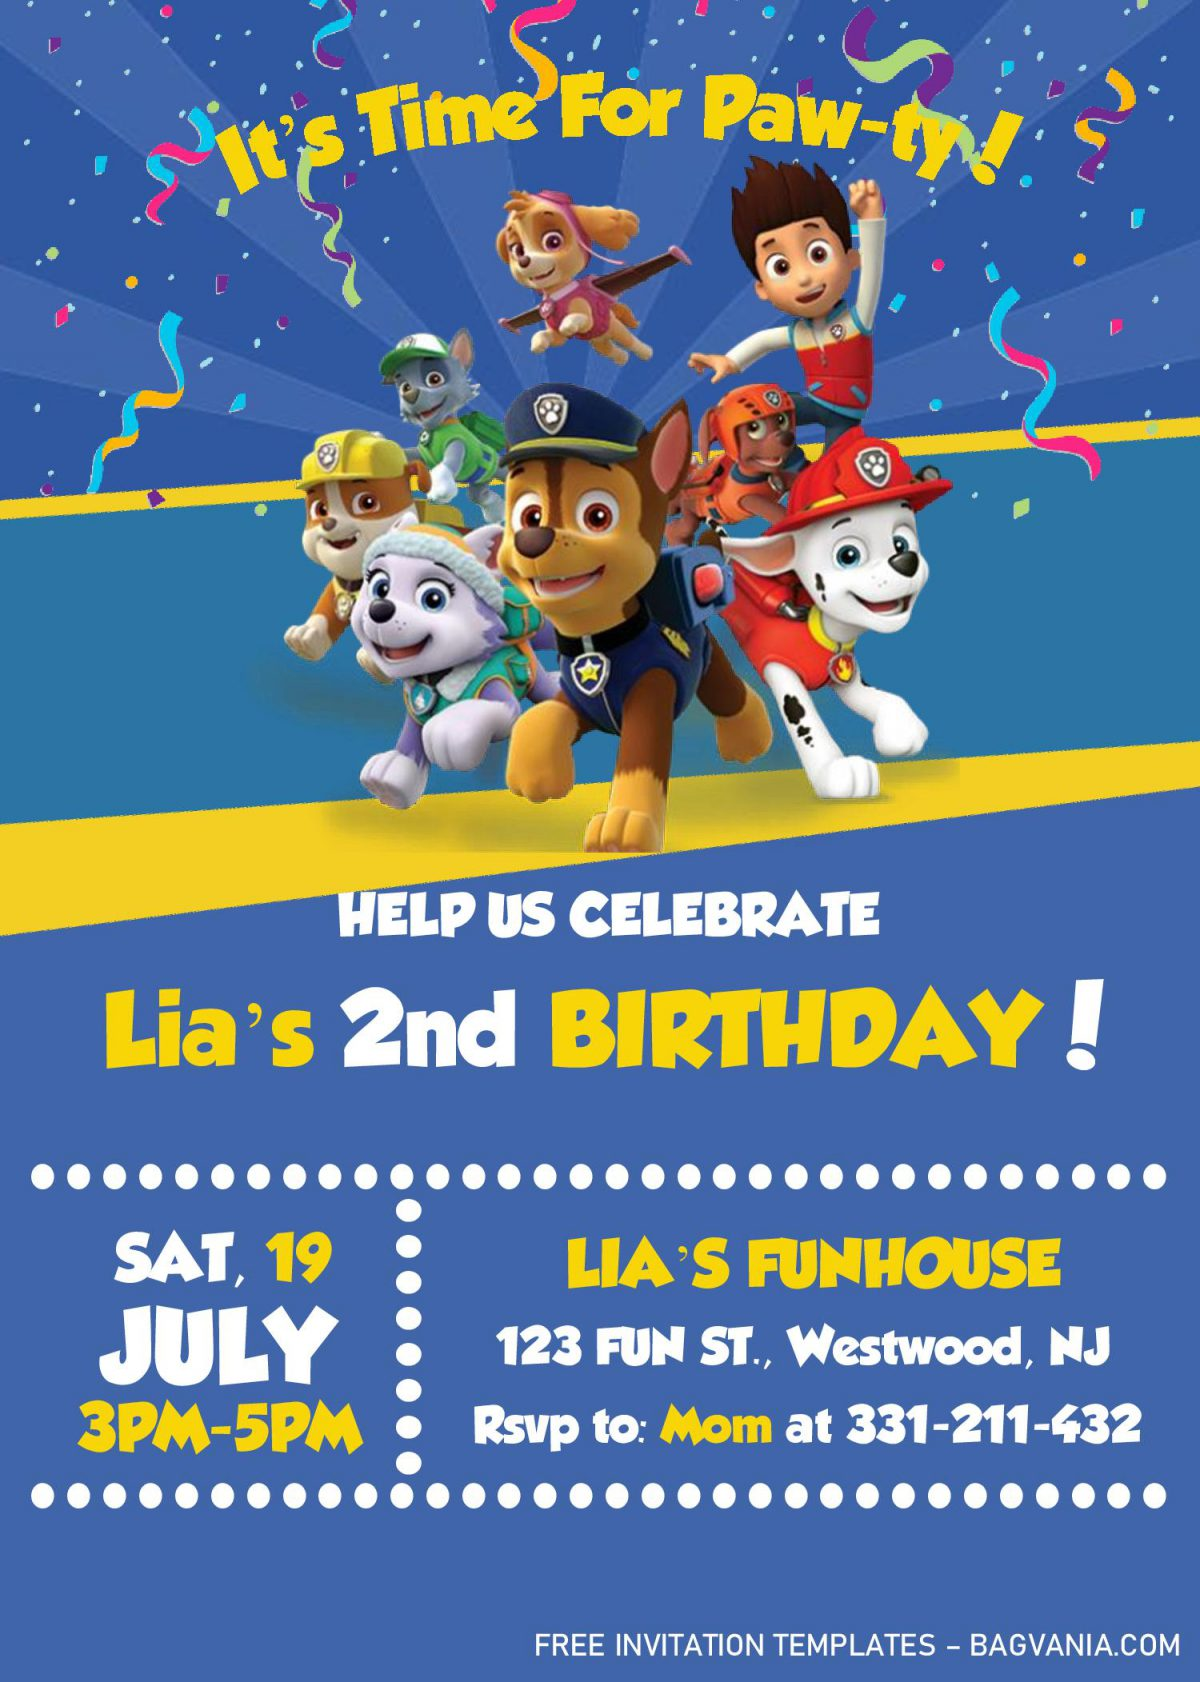 Paw Patrol Invitation Templates - Editable With MS Word and has confetti decorations